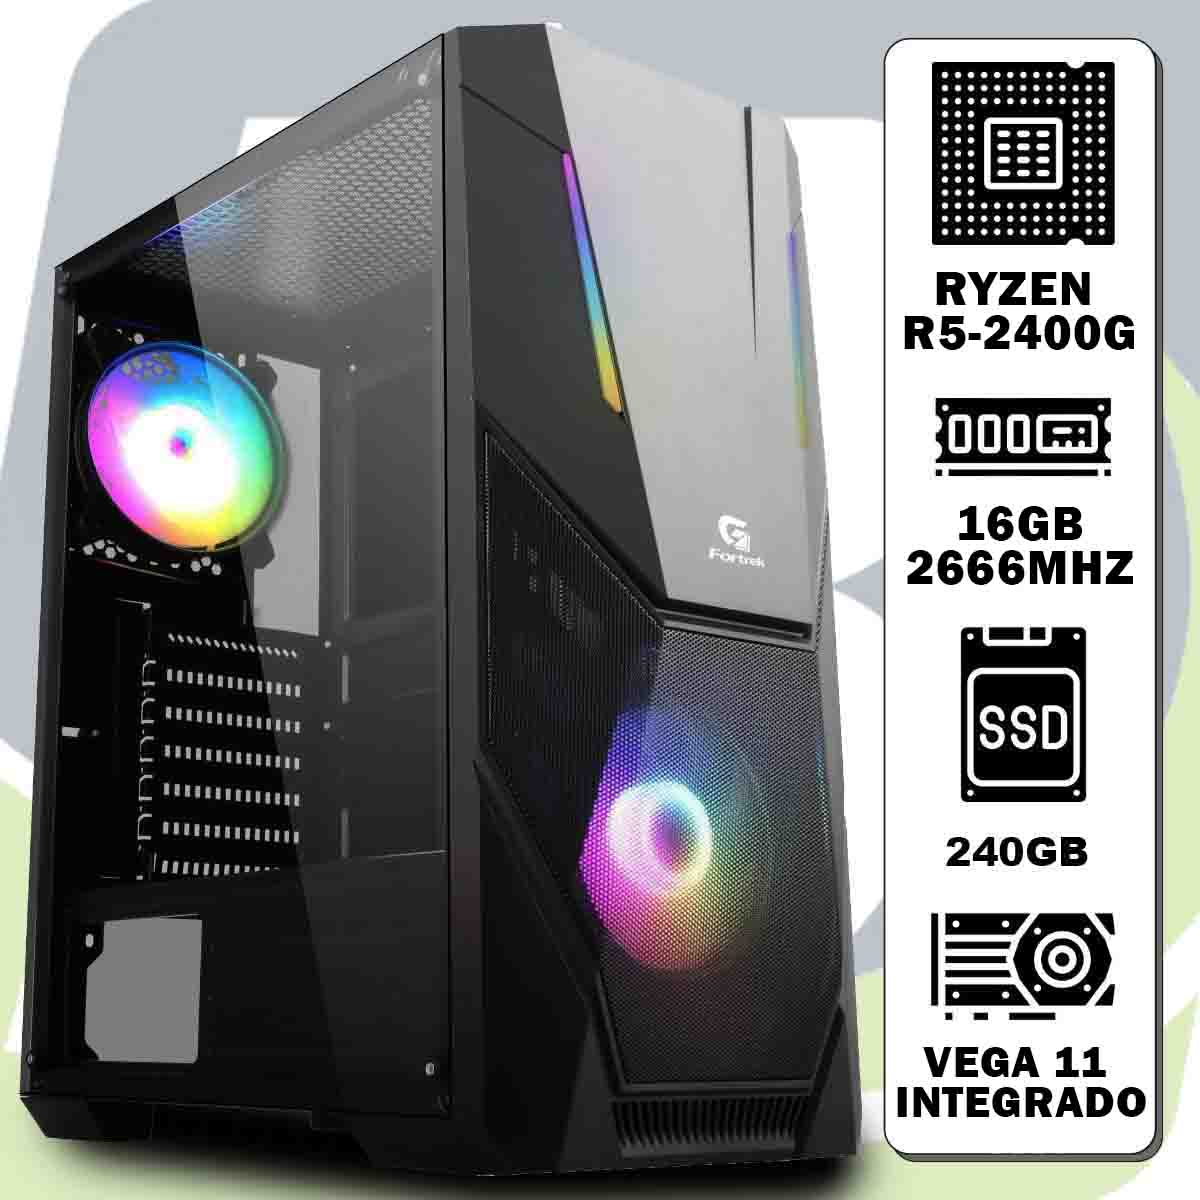 Computador Kit Ryzen R5-2400g / 12gb / Ssd 240gb/vega 11 Integrado